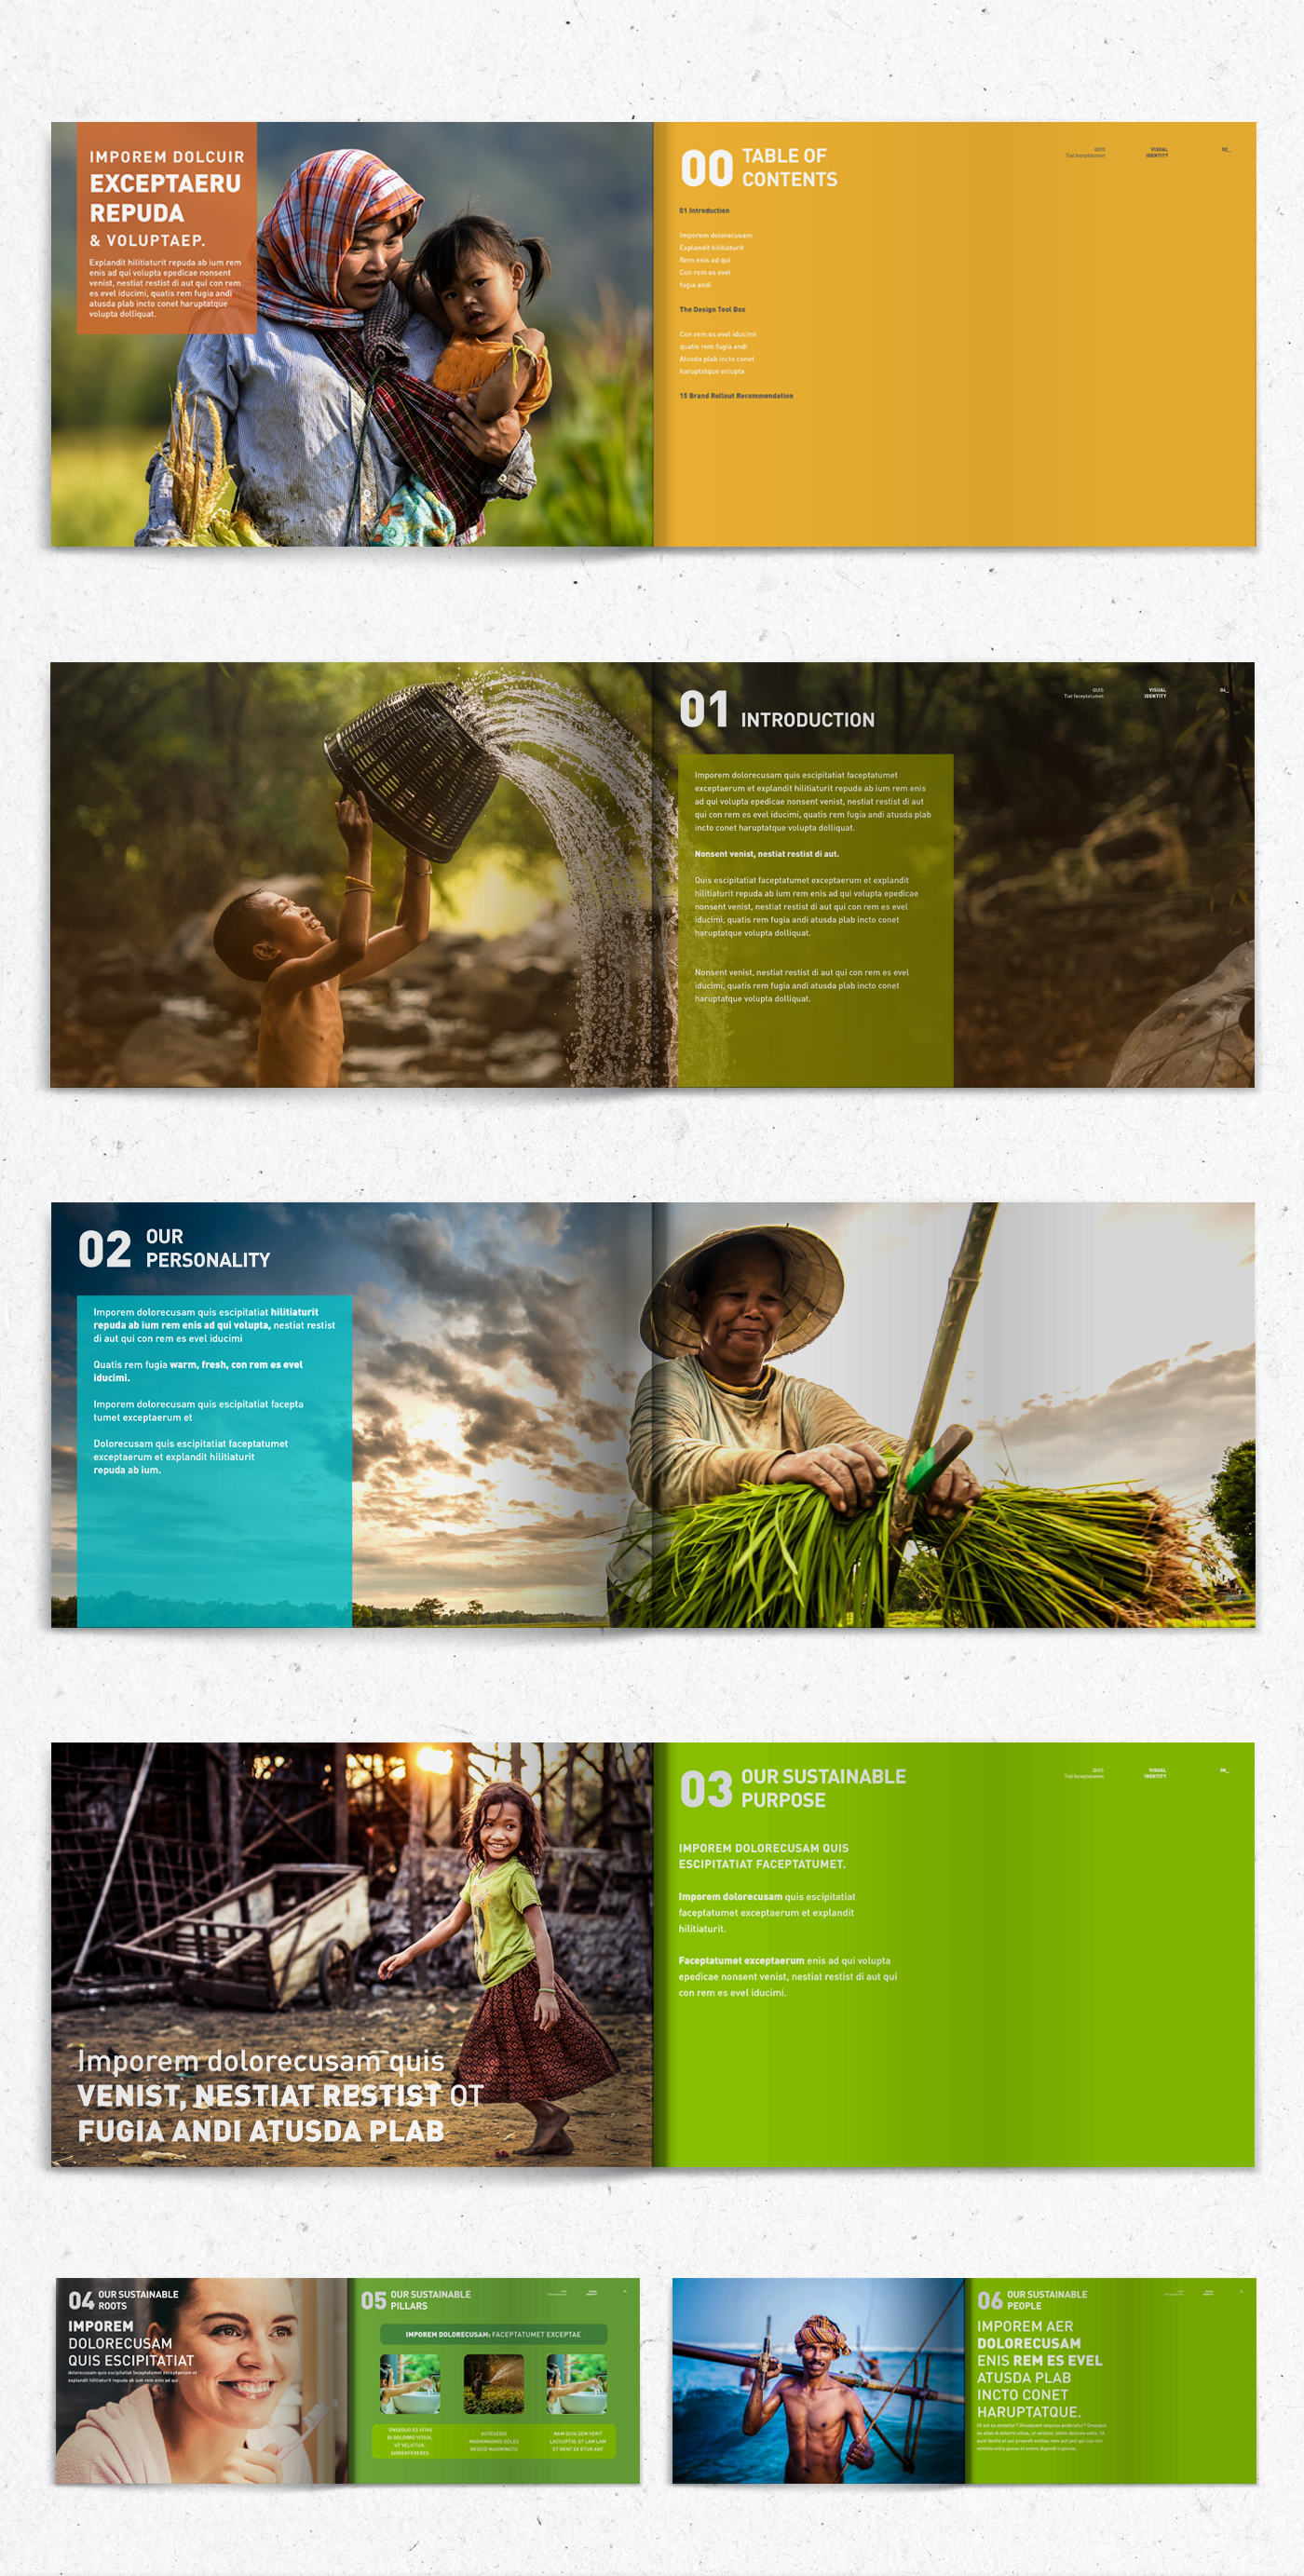 Sustainability visual identity brand guidelines branding  graphic design  Photography  campaign eco communication Corporate Identity